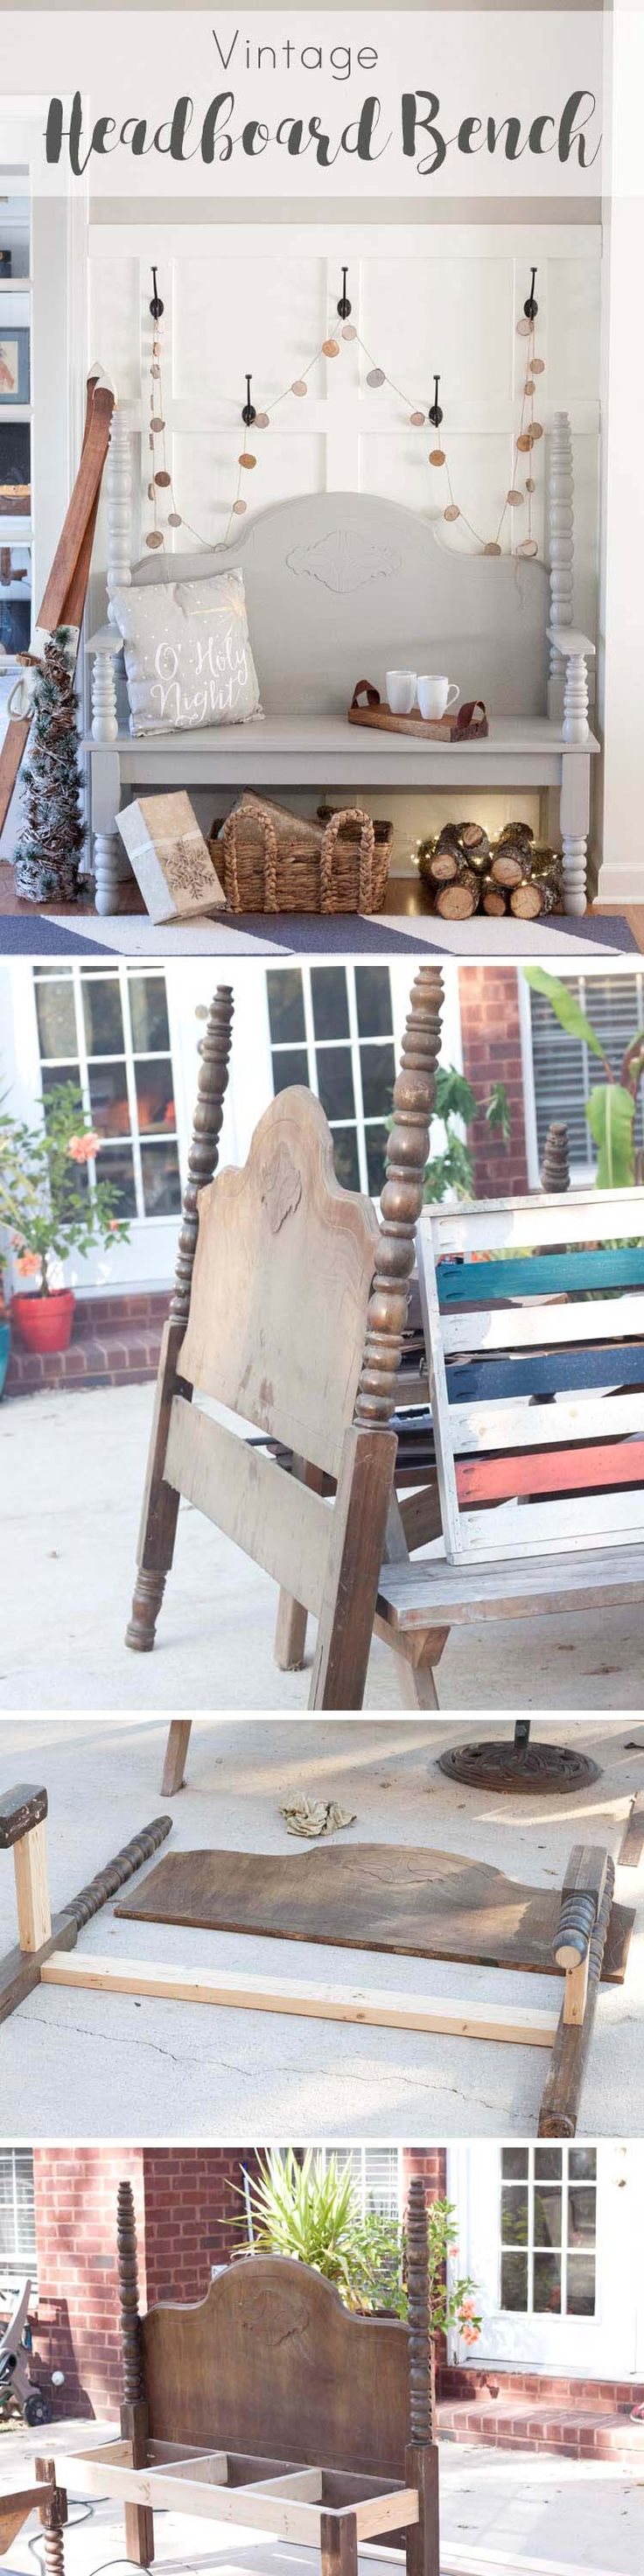 DIY Vintage Headboard Bench - Southern Revivals